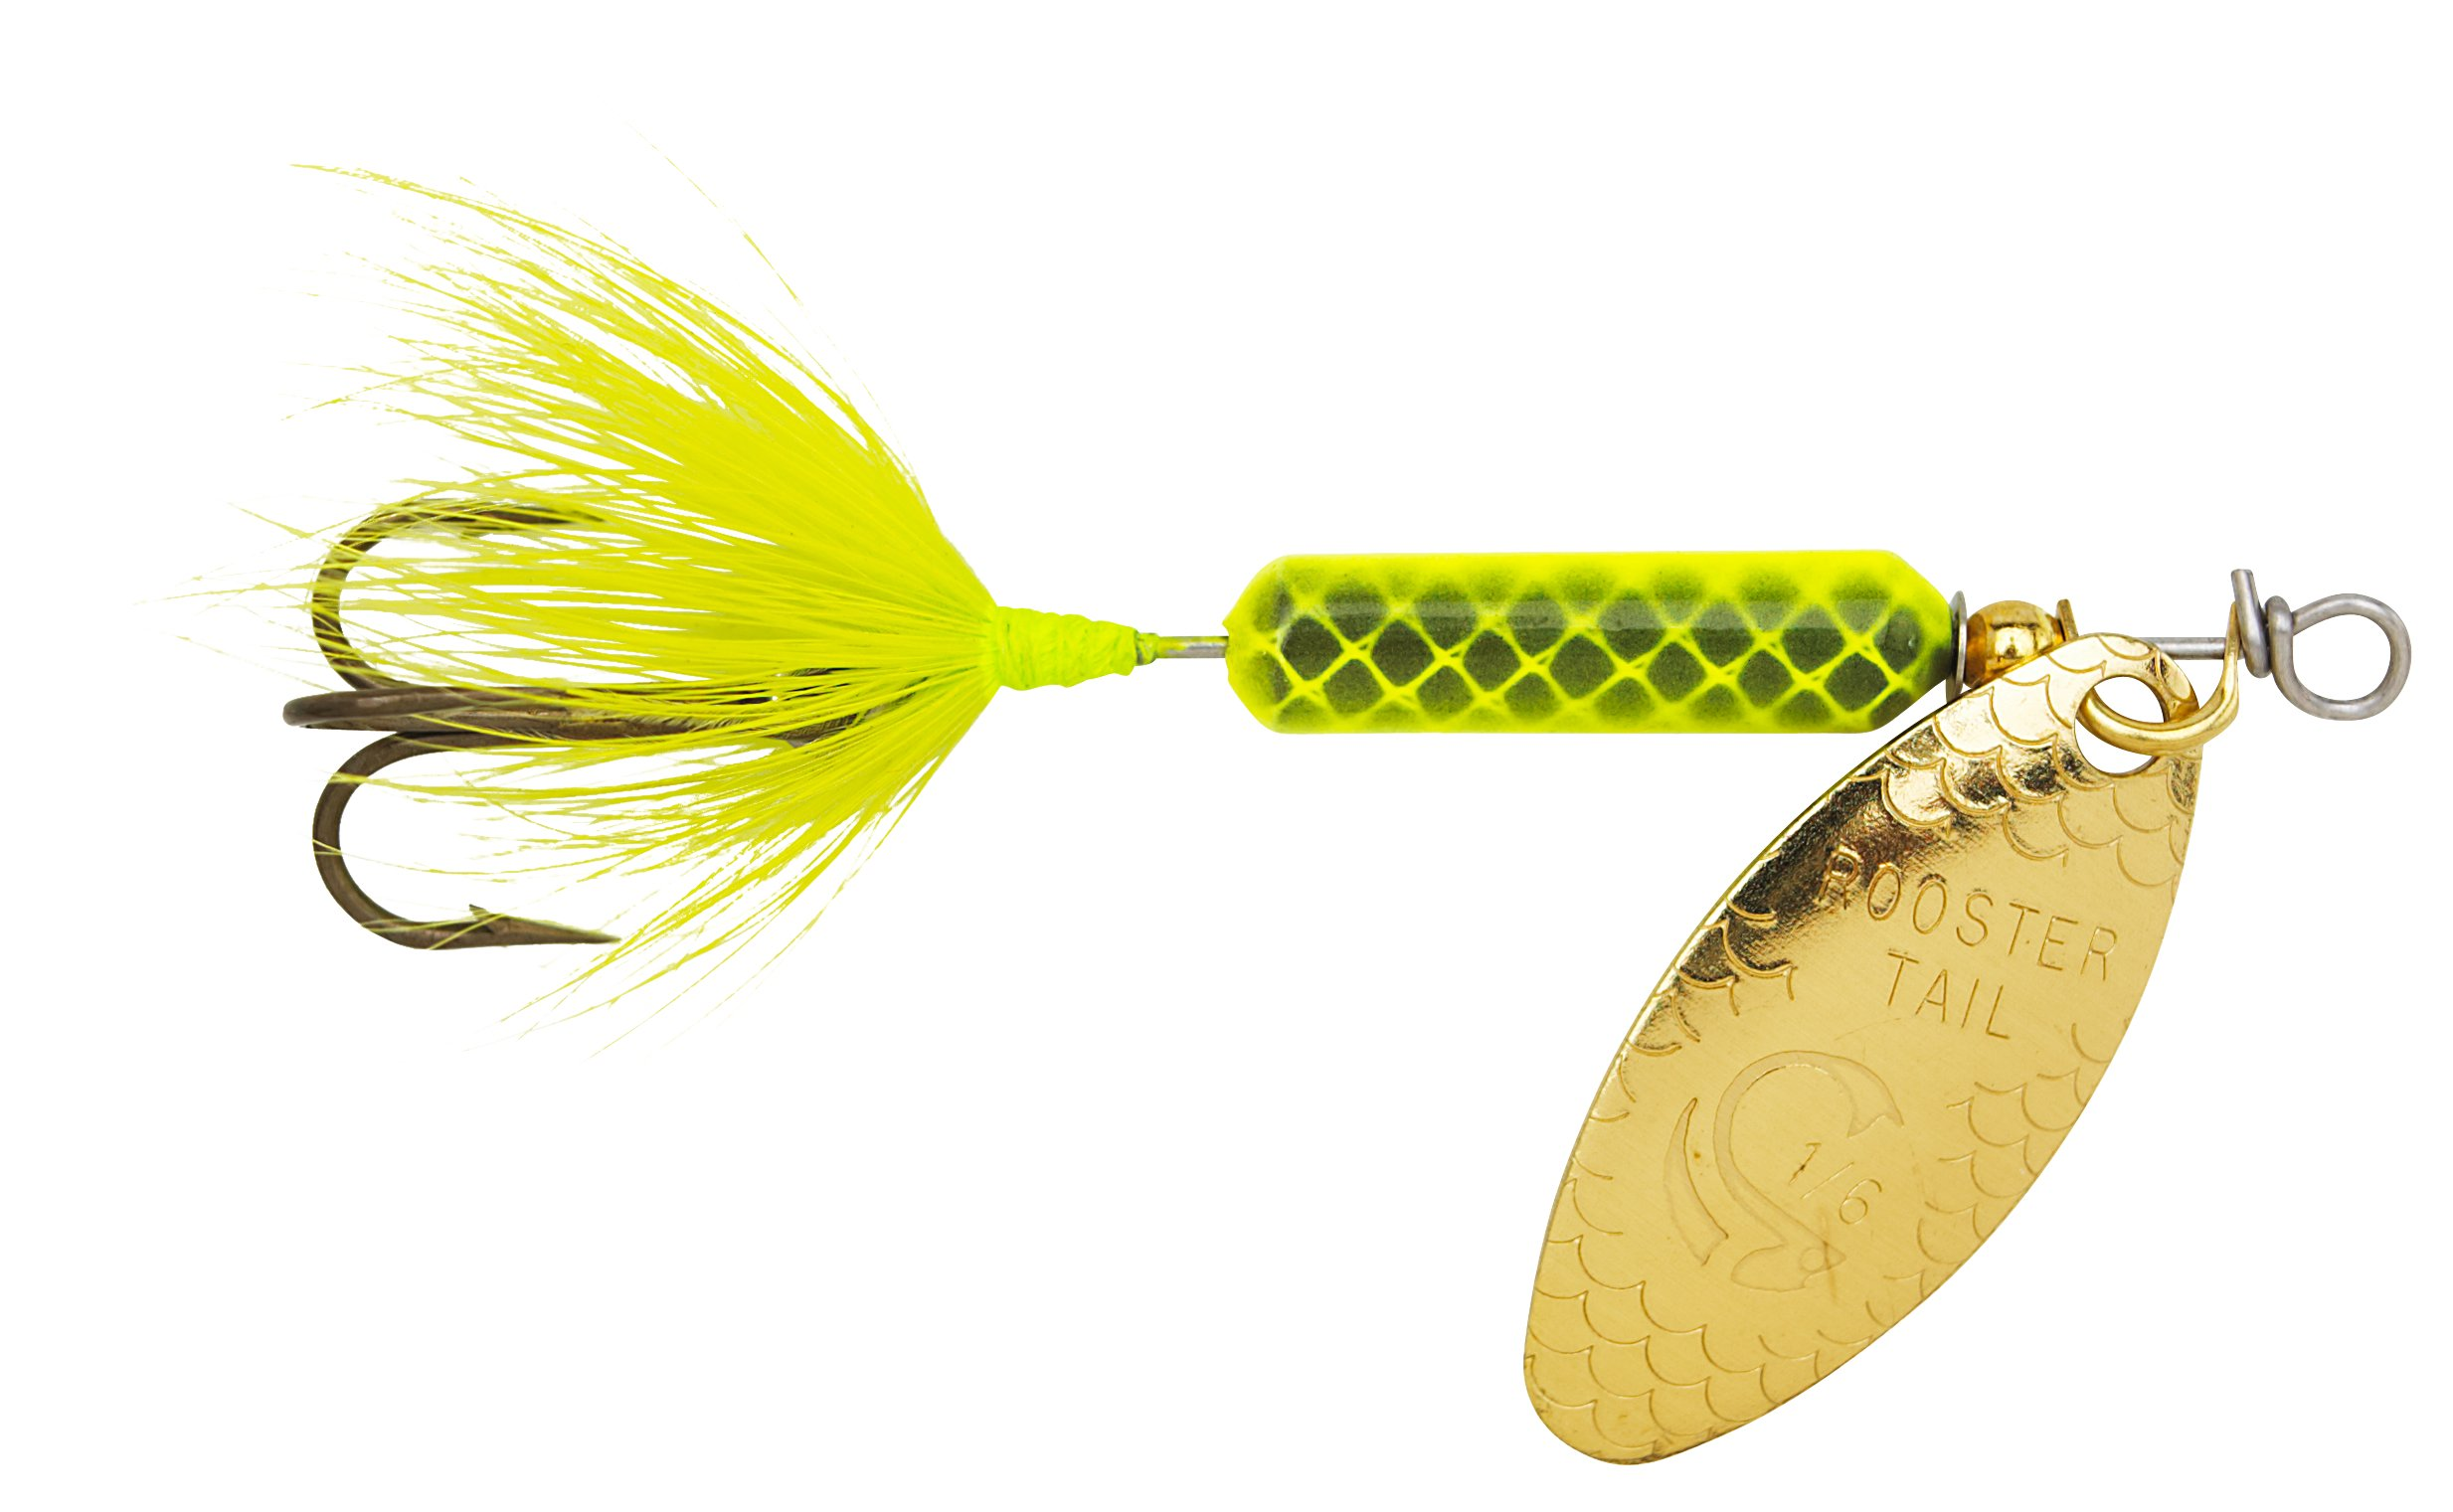 Yakima Bait Wordens Original Rooster Tail 1/4oz Spinner Lure, 3 Pack- Chartreuse by Yakima Bait